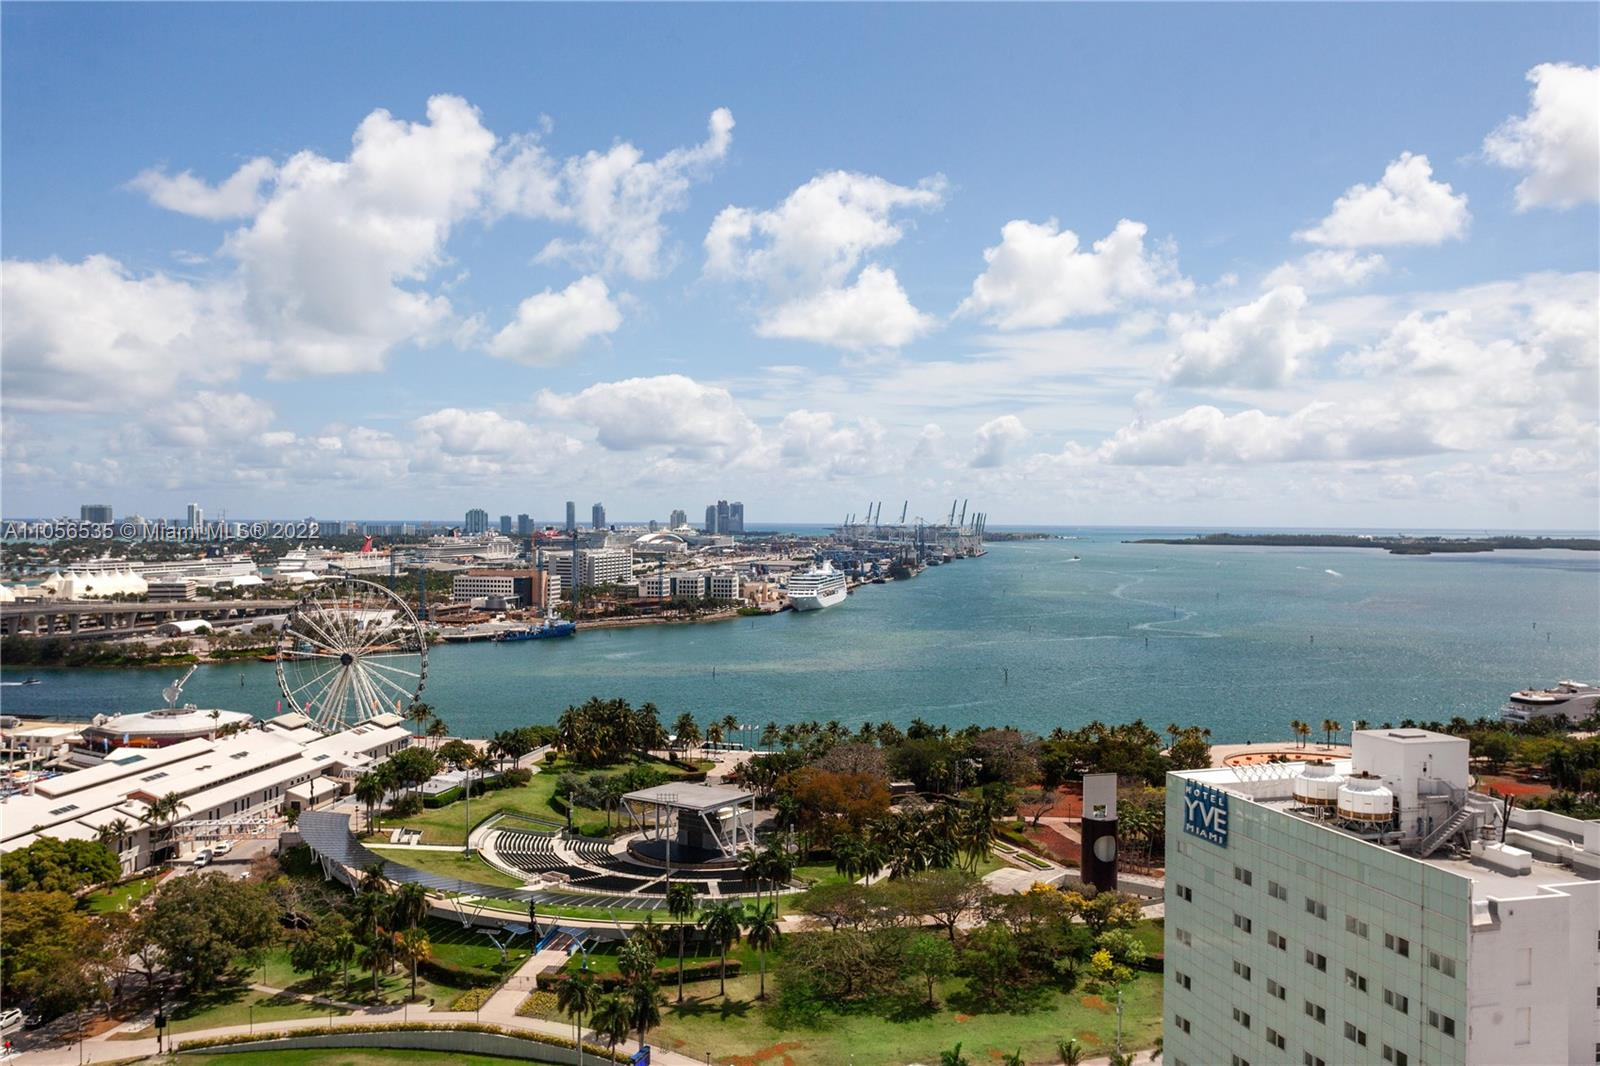 Beautiful 2 bed/ 2bath designer decorated fully furnished and Turnkey, hardly been lived in and like new. Best line w/ spectacular unobstructed Biscayne Bay Water Views in the entire building. Just bring your toothbrush and start enjoying the Florida Lifestyle. Fantastic location! Walk to shopping, restaurants or financial district. All amenities w state-of-the-art gym, 4 pools, Concierge, valet, business center and more....